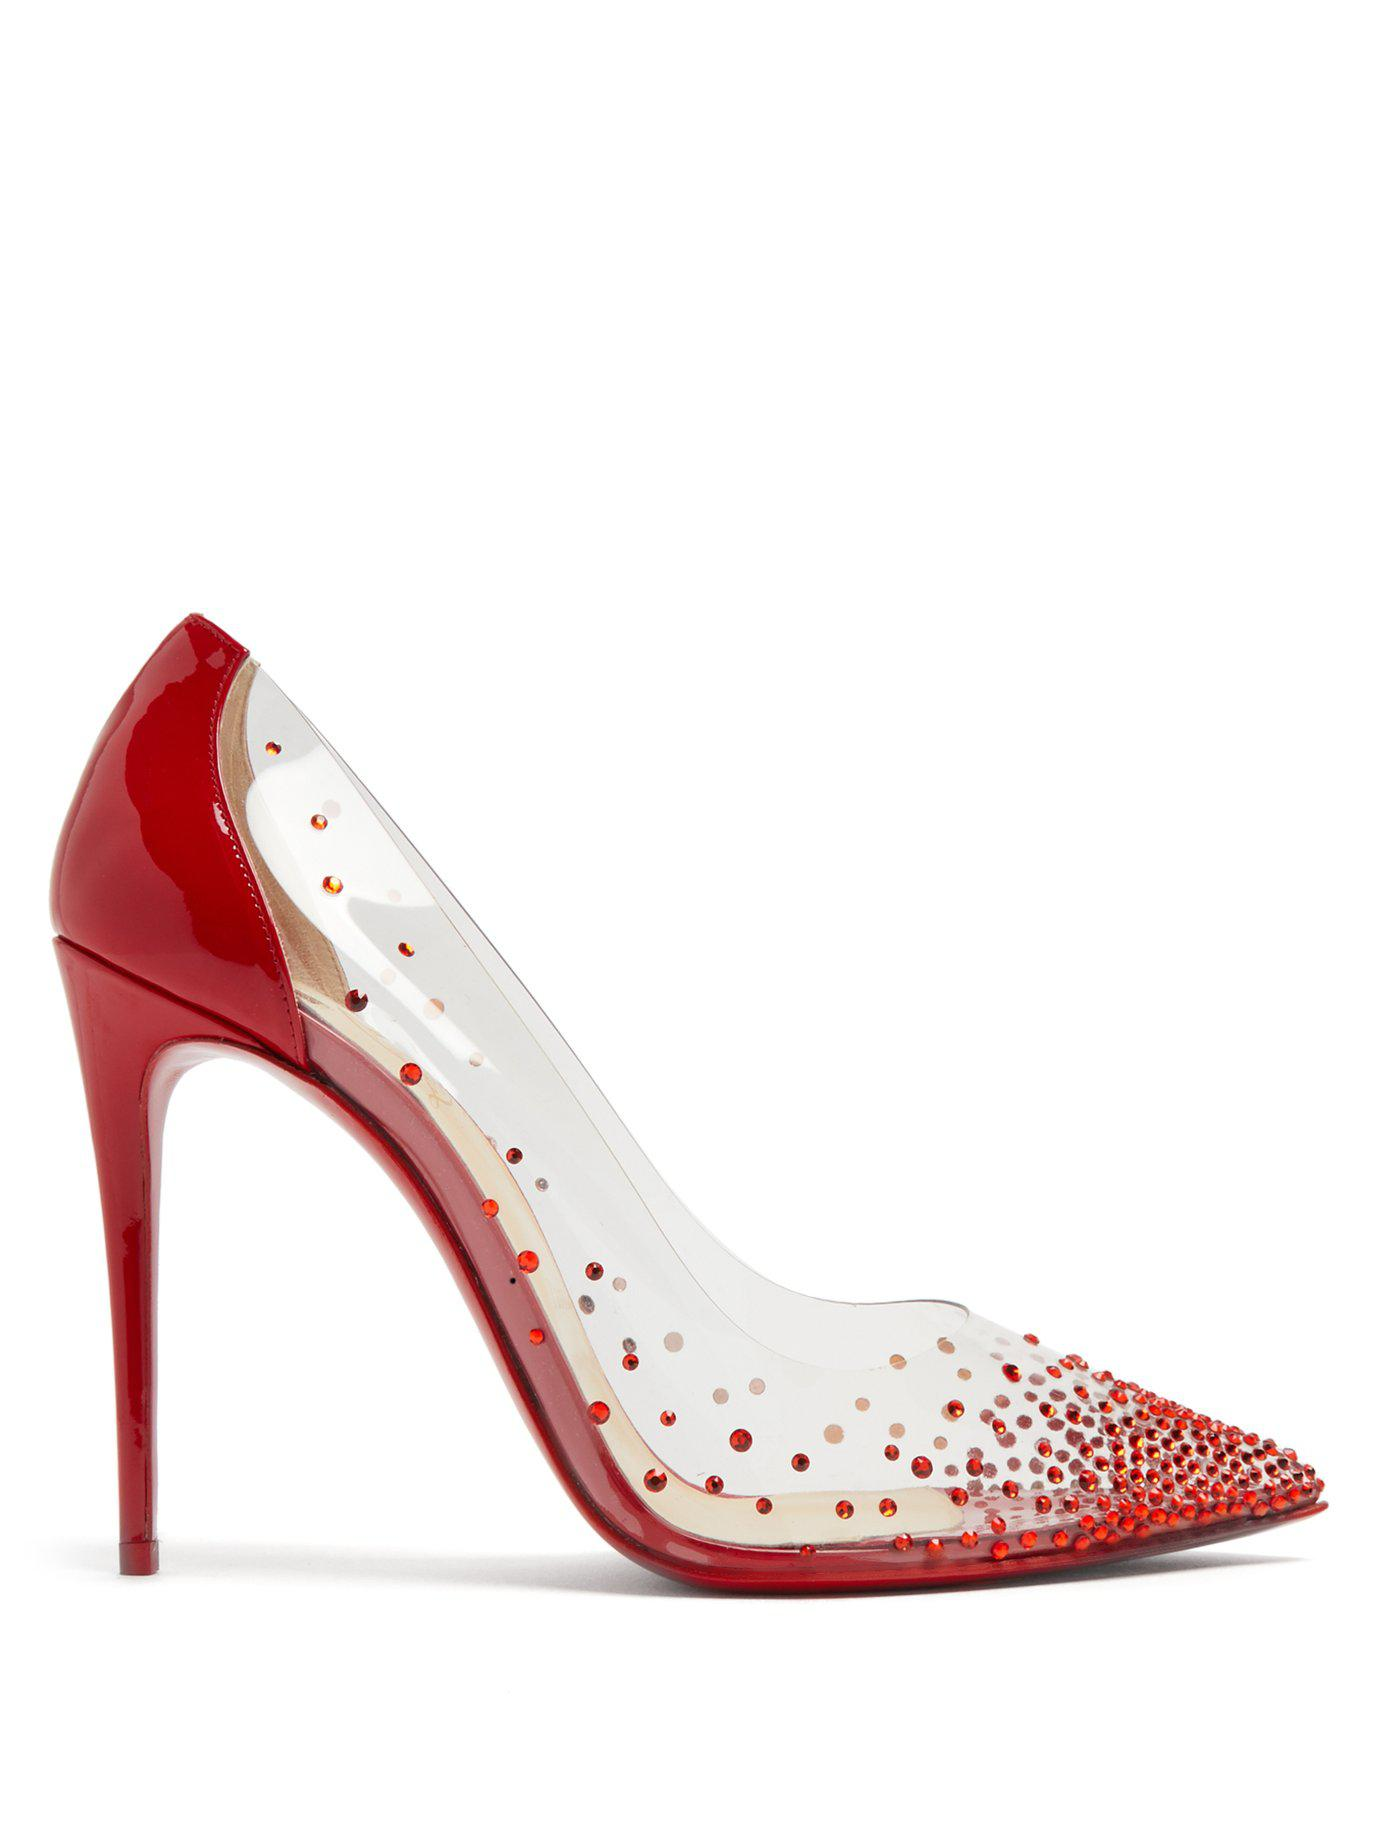 5a2aa32ab72 Lyst - Christian Louboutin Degrastrass 100mm Crystal-embellished ...